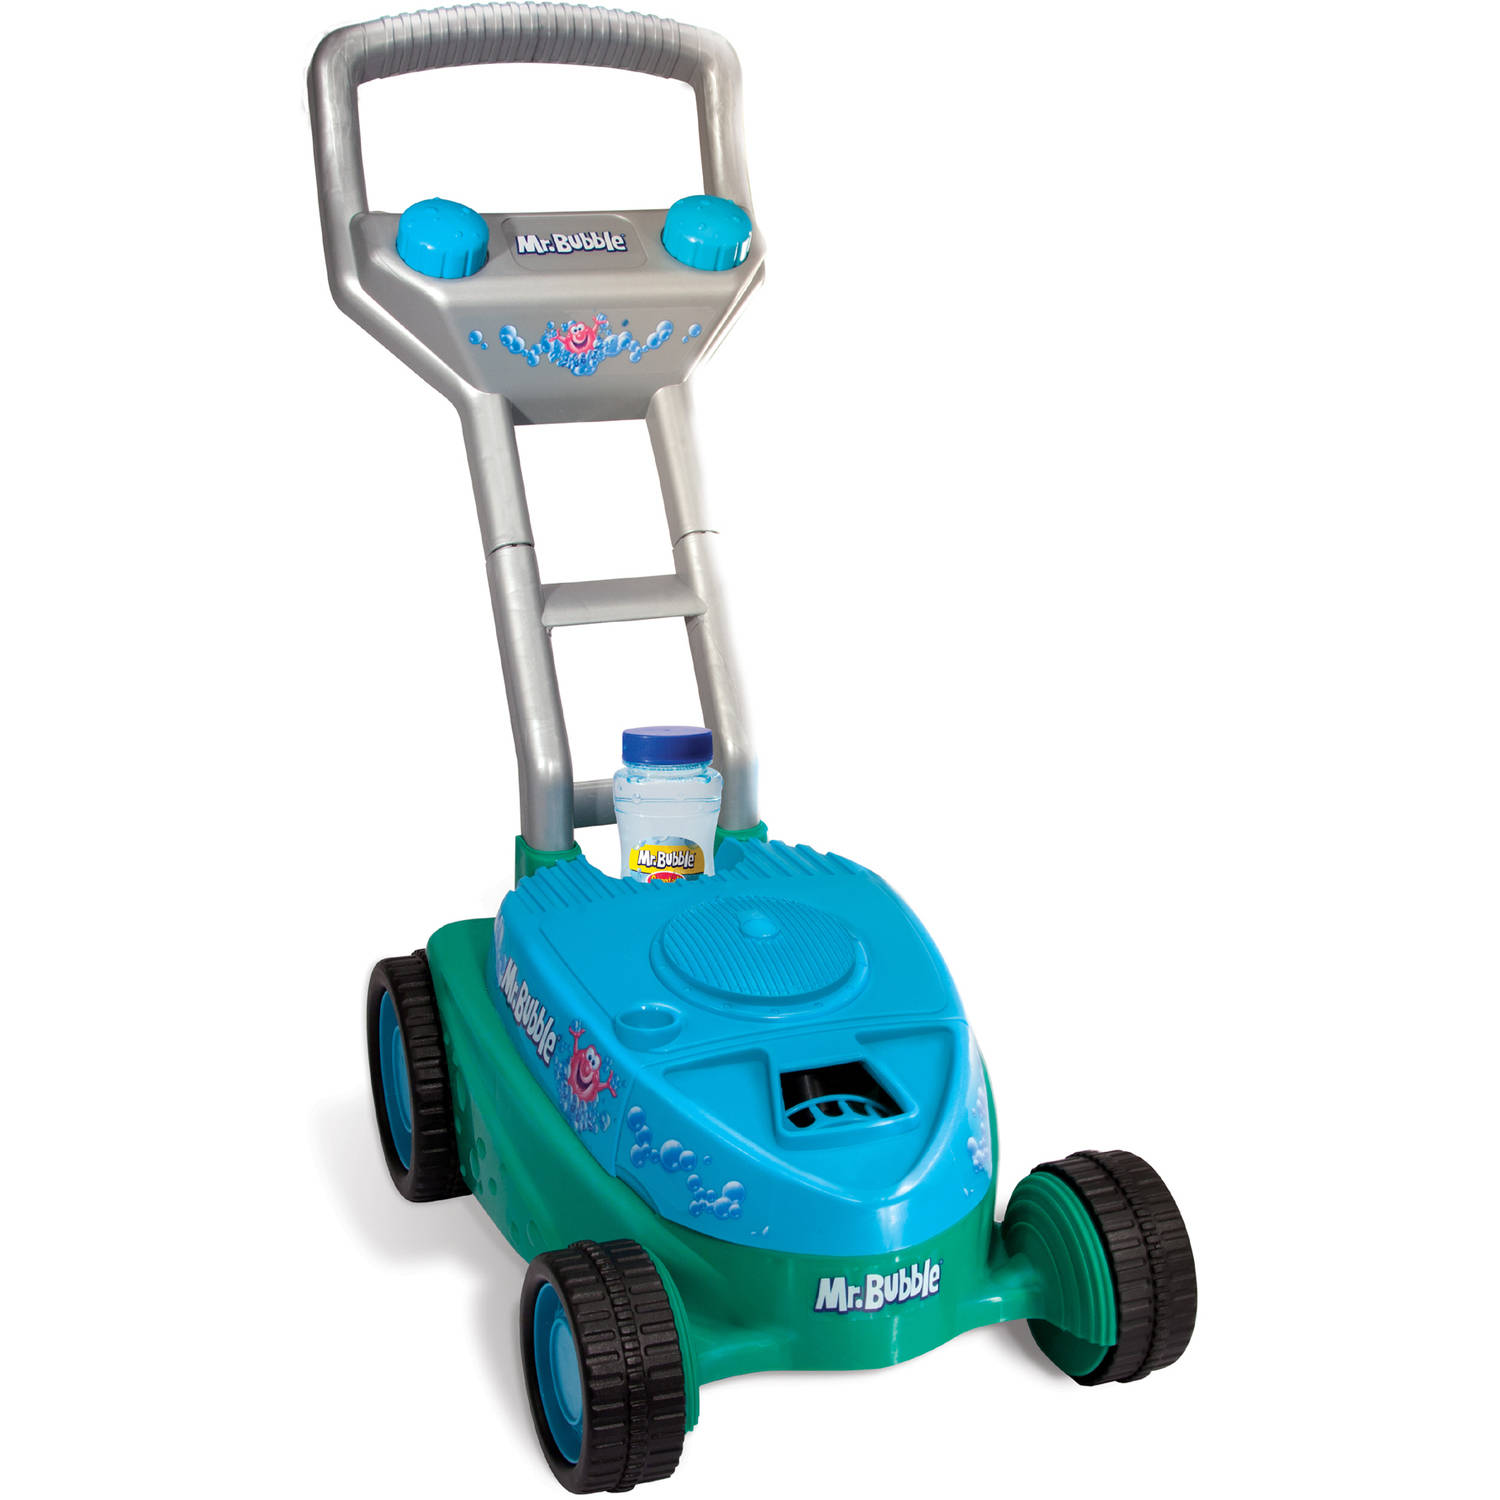 Kid Galaxy Push Bubble Mower by Mr. Bubble by Kid Galaxy